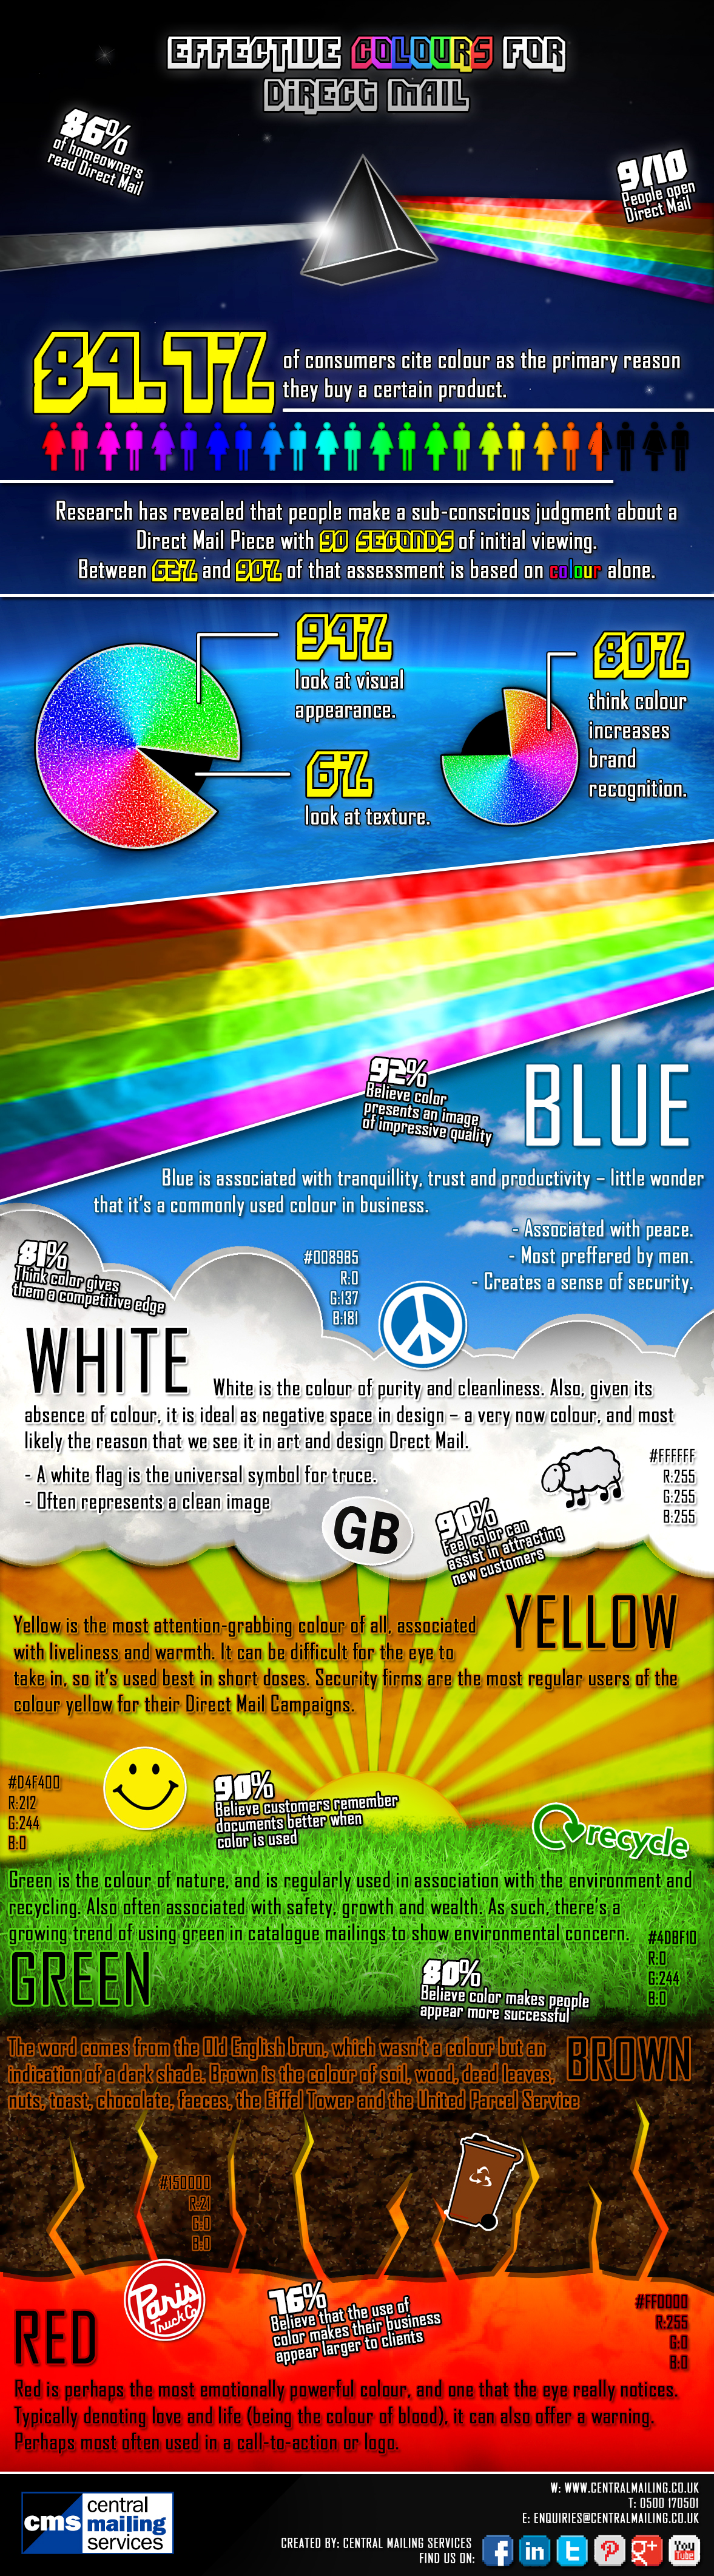 Effective Colours For Direct Mail